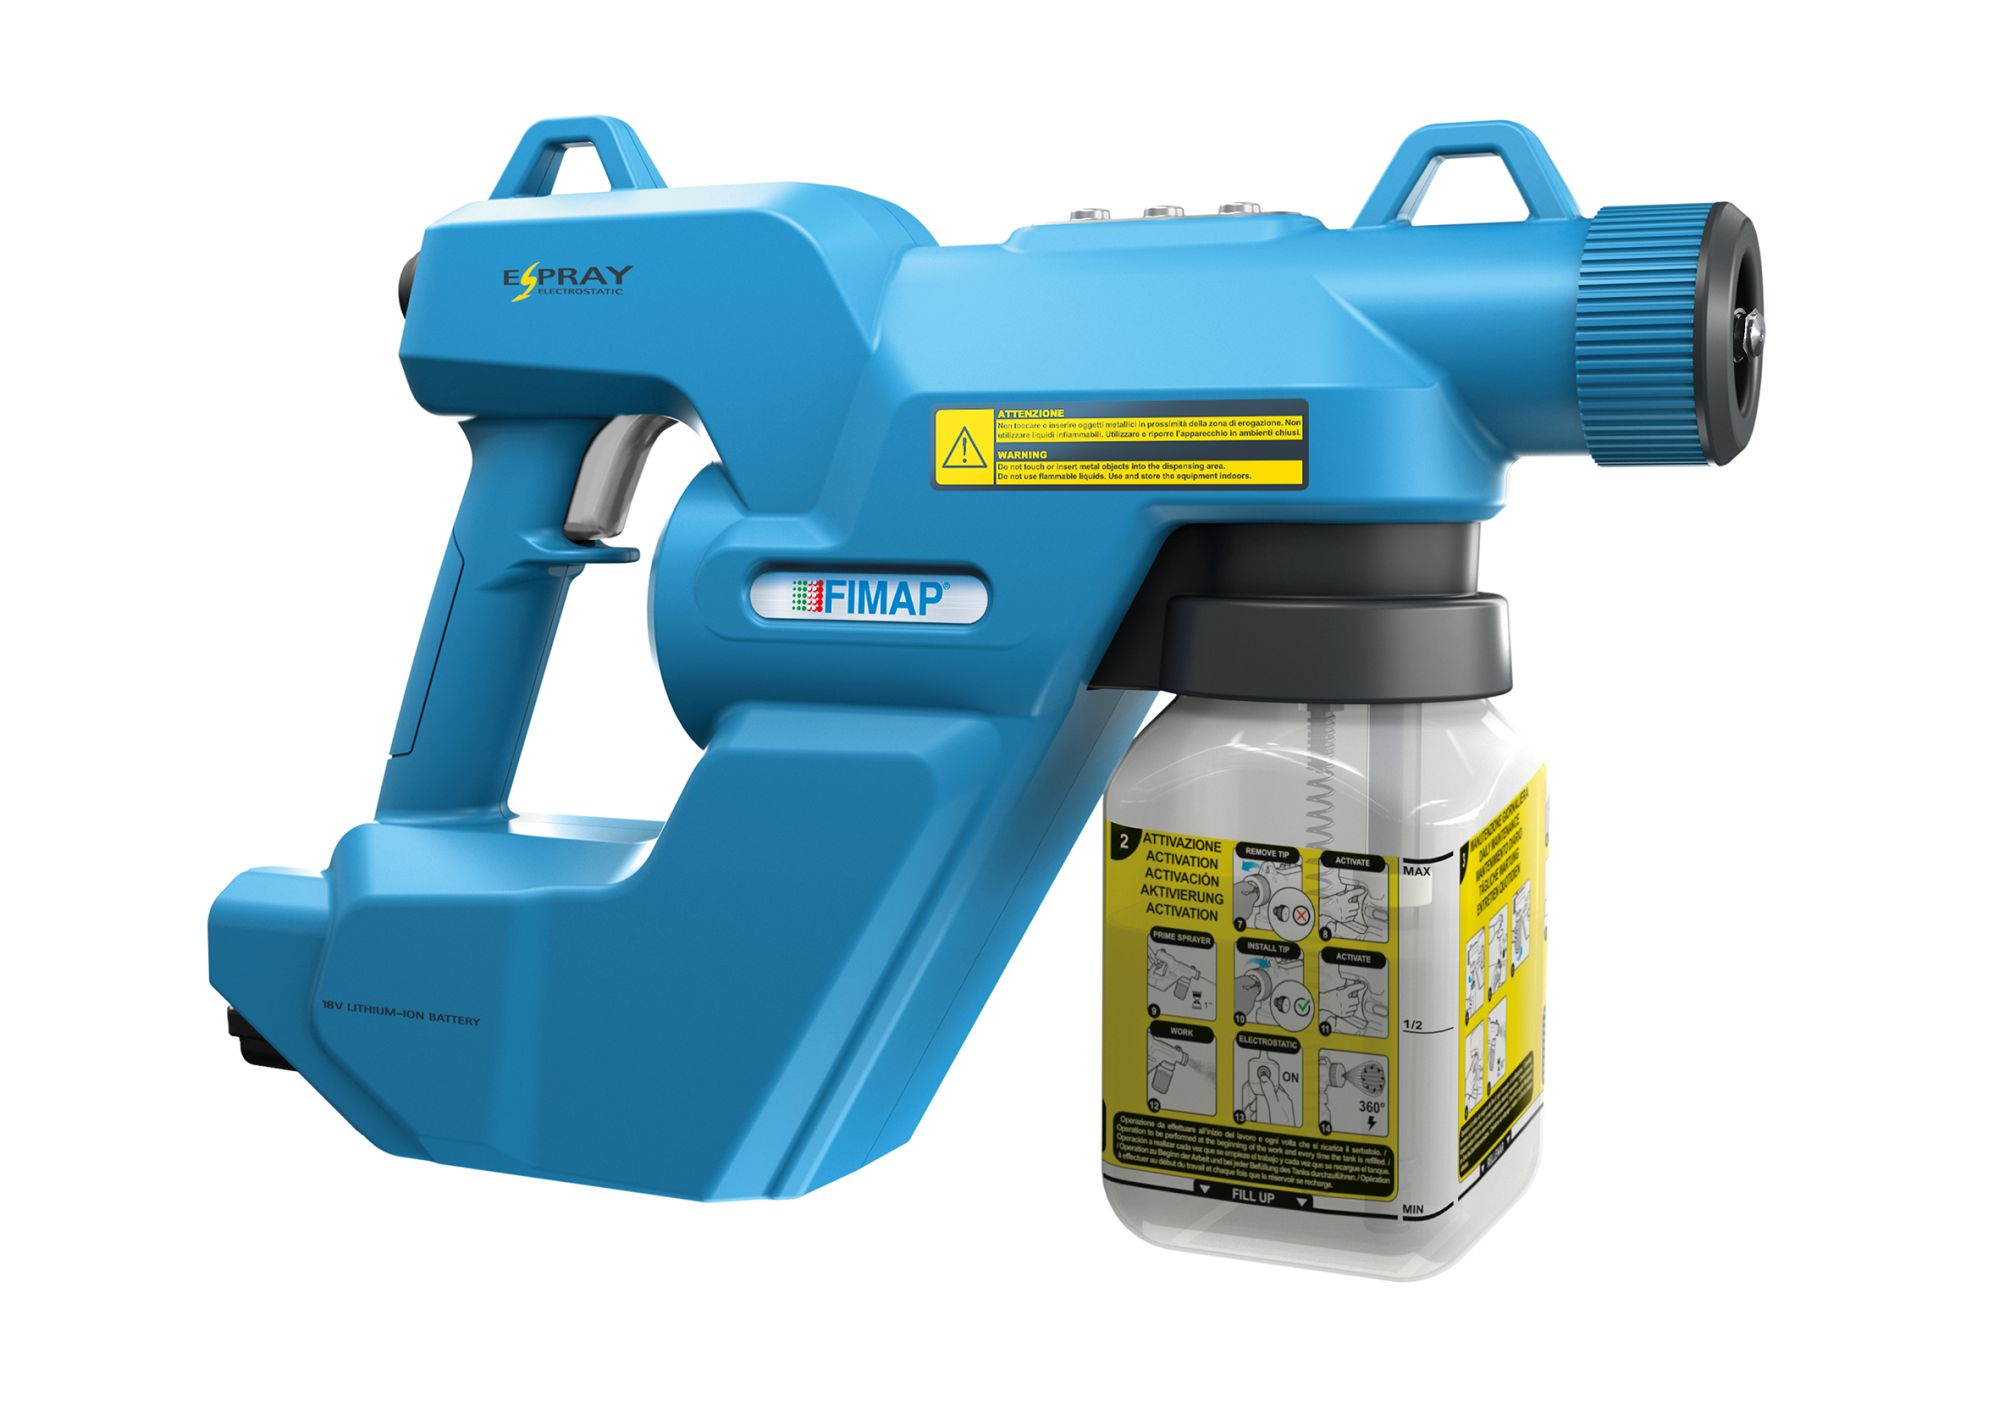 Fimap E-spray Electrostatic